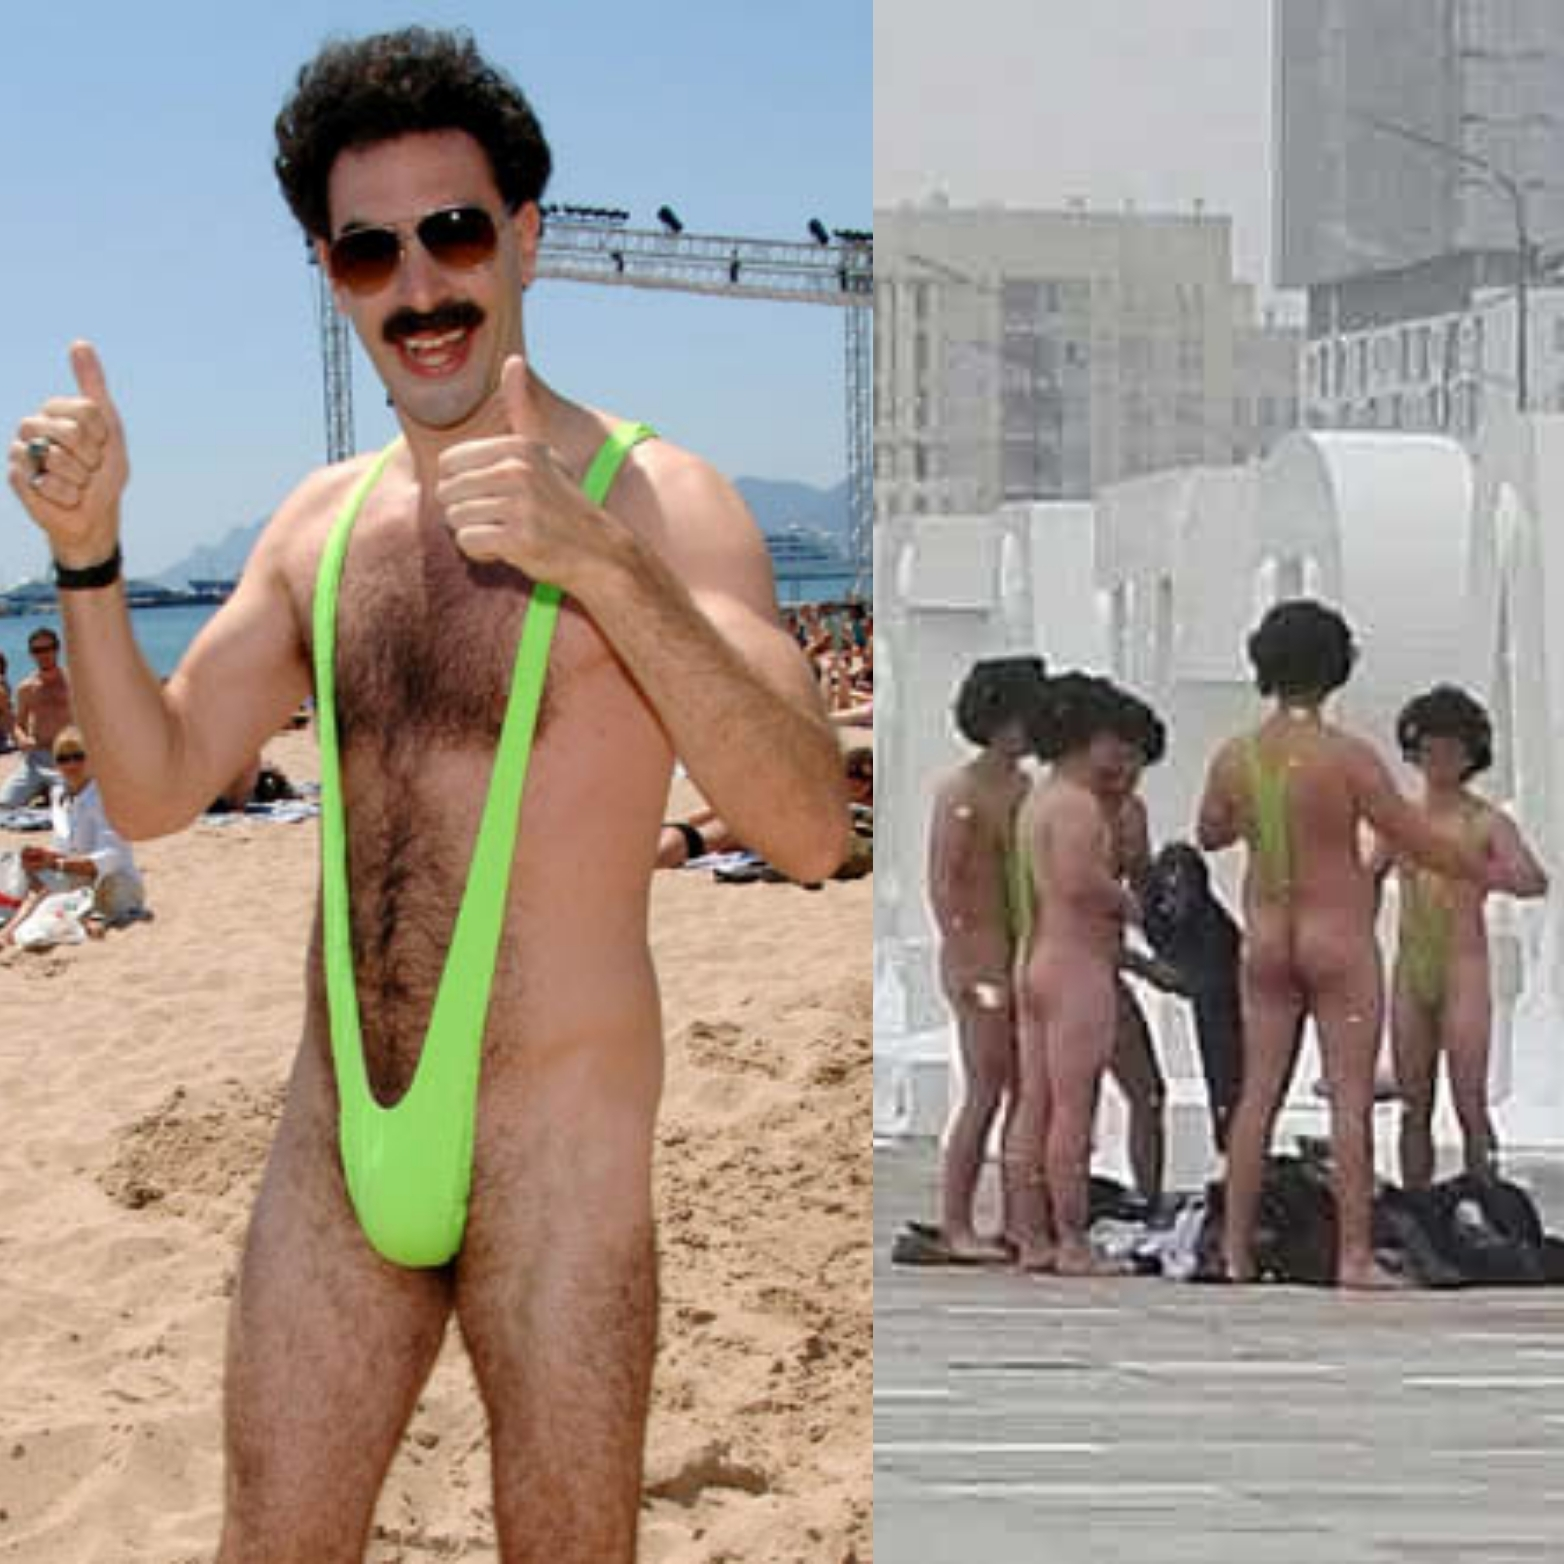 8ec7888afb Sacha Baron Cohen 'Is a Very Nice' Man – Offers to Bail Out Czech Tourists  Detained in Kazakhstan for Heinous Crime of Wearing 'Borat' Mankini's in  Public